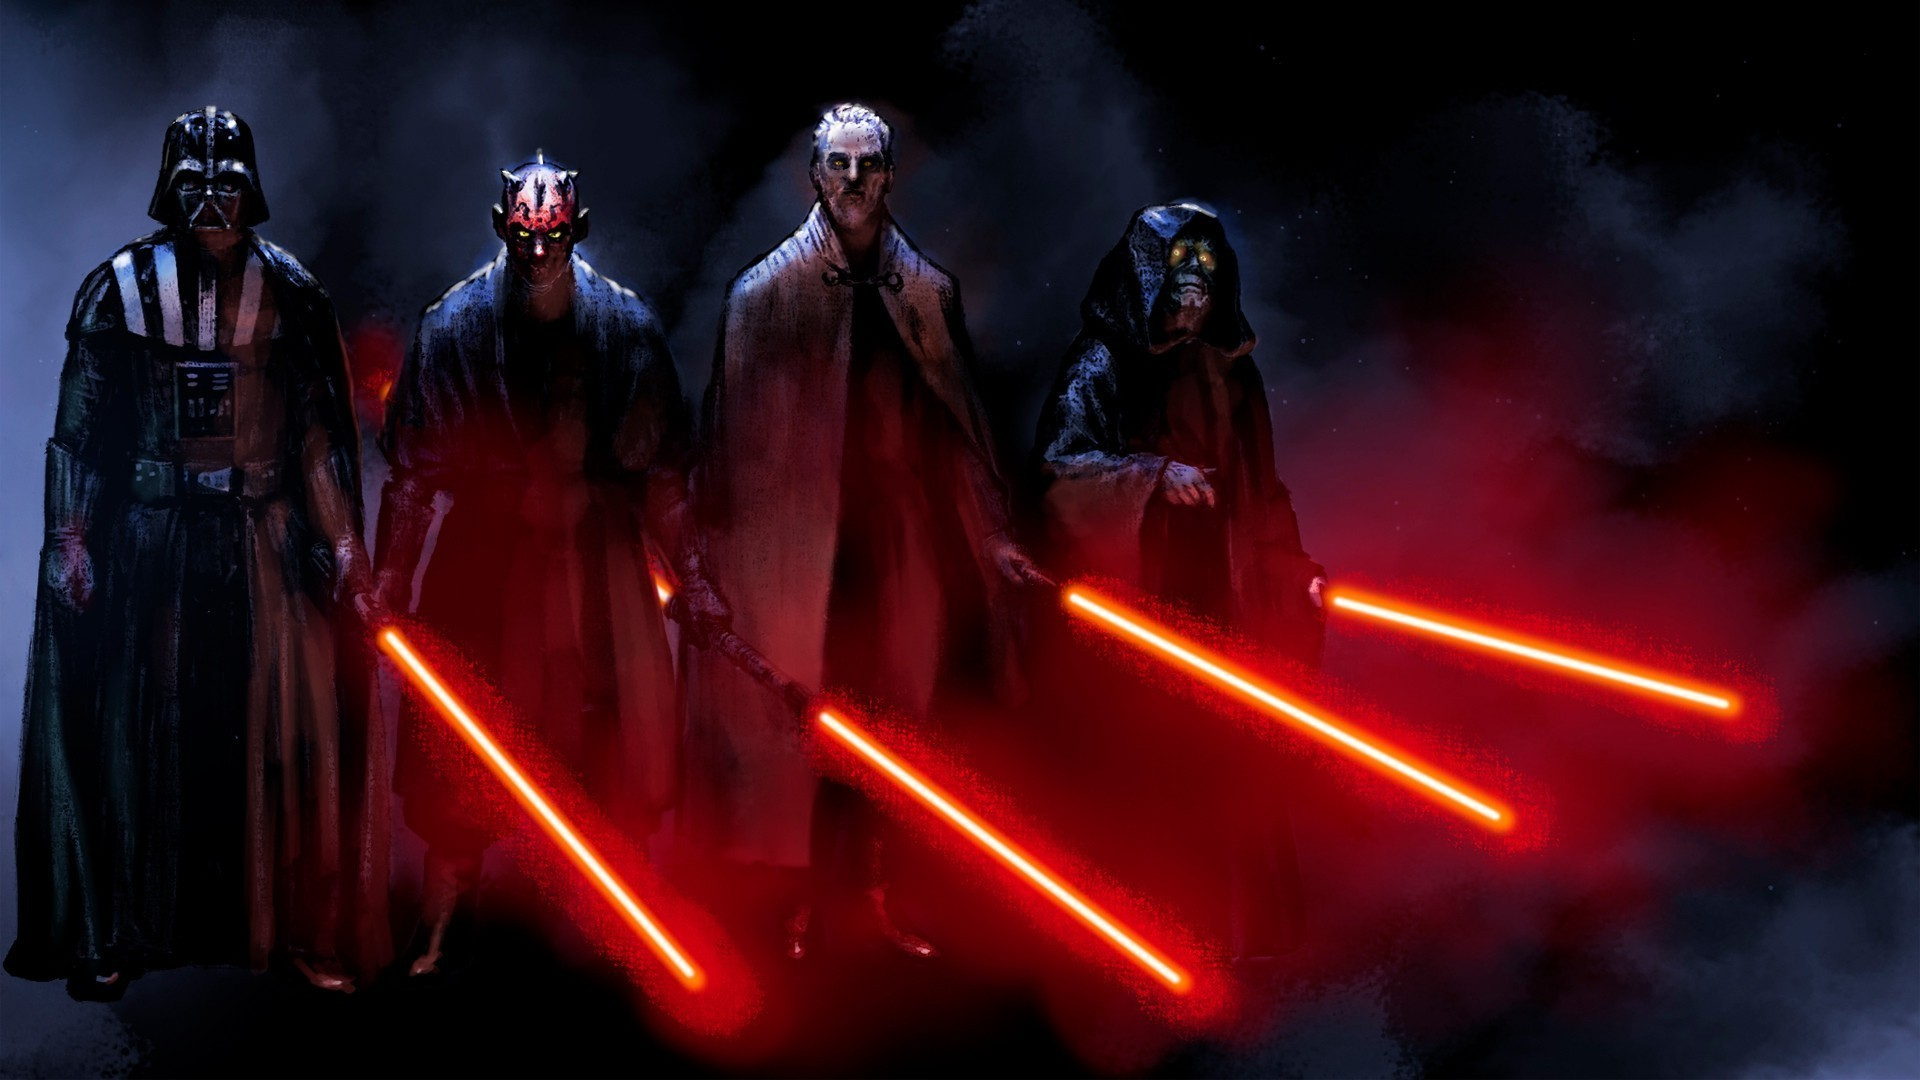 Star Wars Sith Wallpapers Free As Wallpaper HD